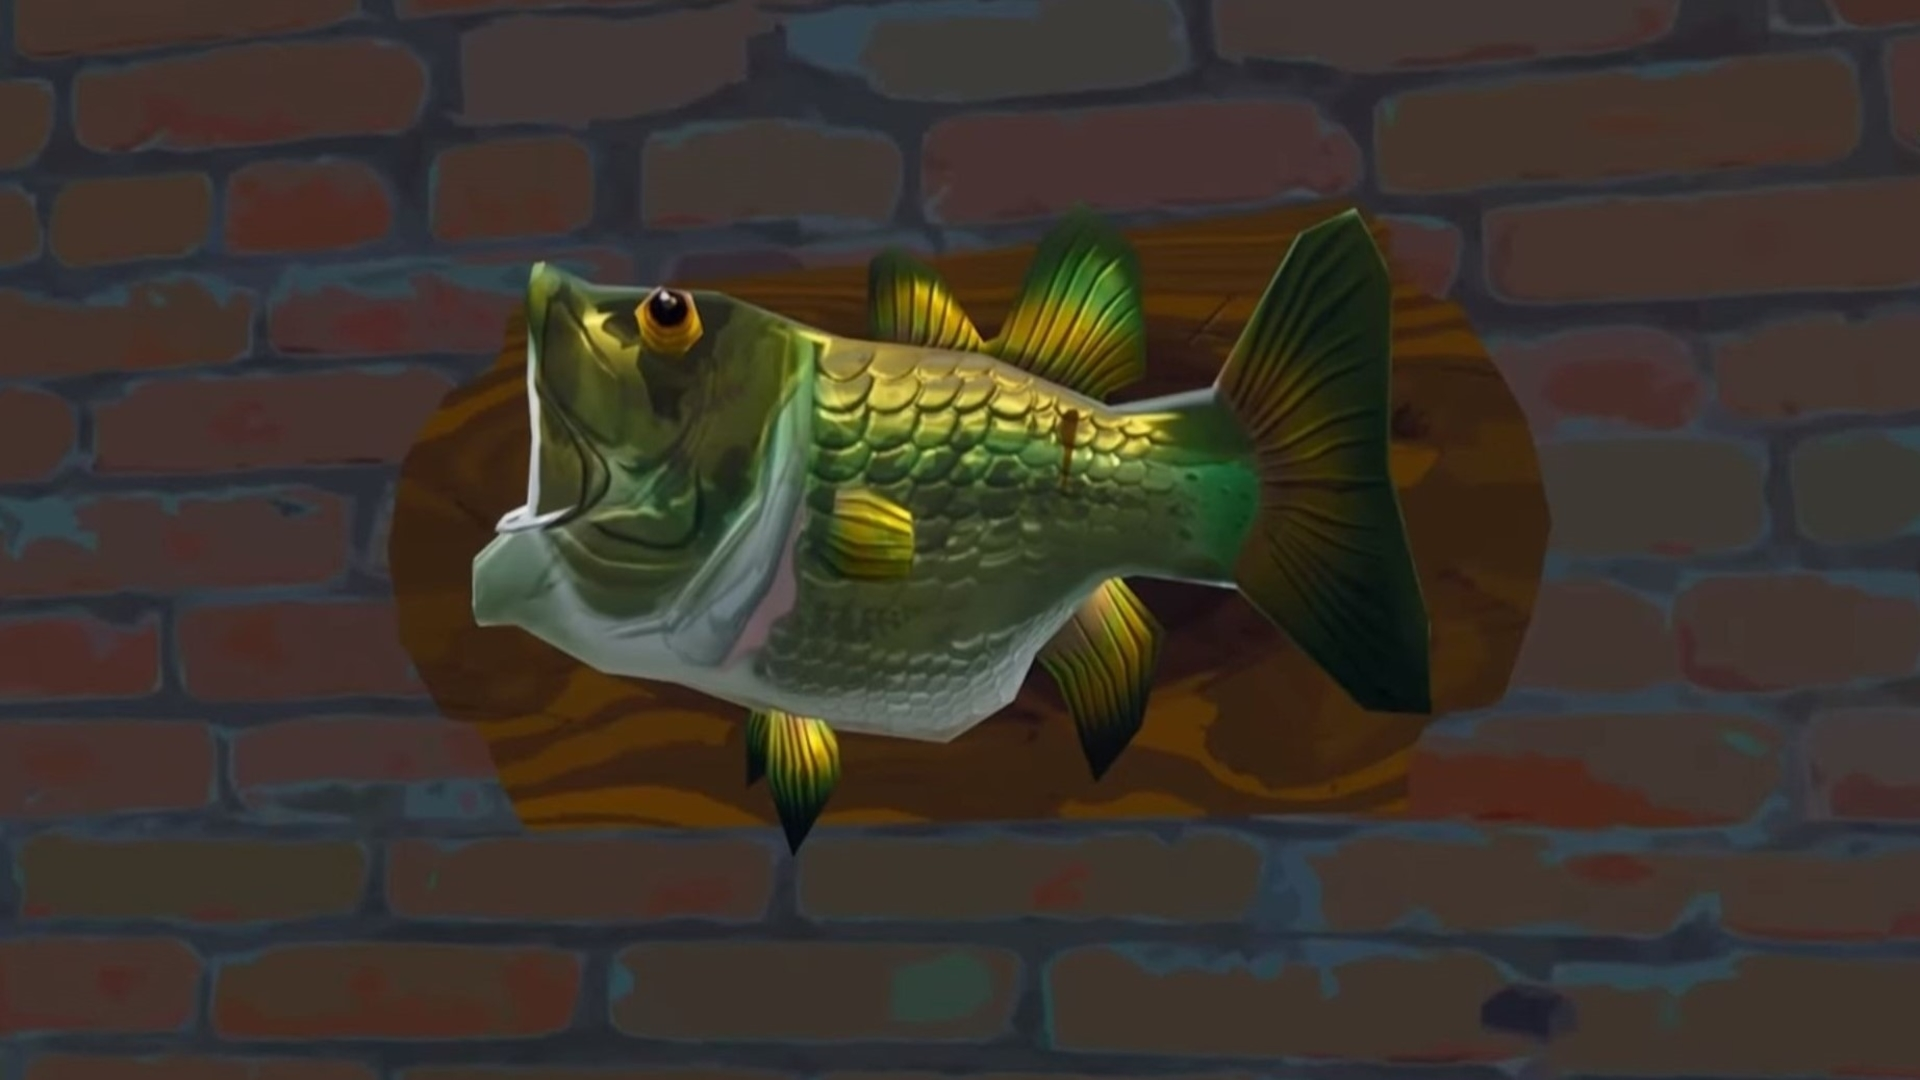 All Fortnite Fish Trophy Locations Where To Find All The Fish Trophies PCGamesN